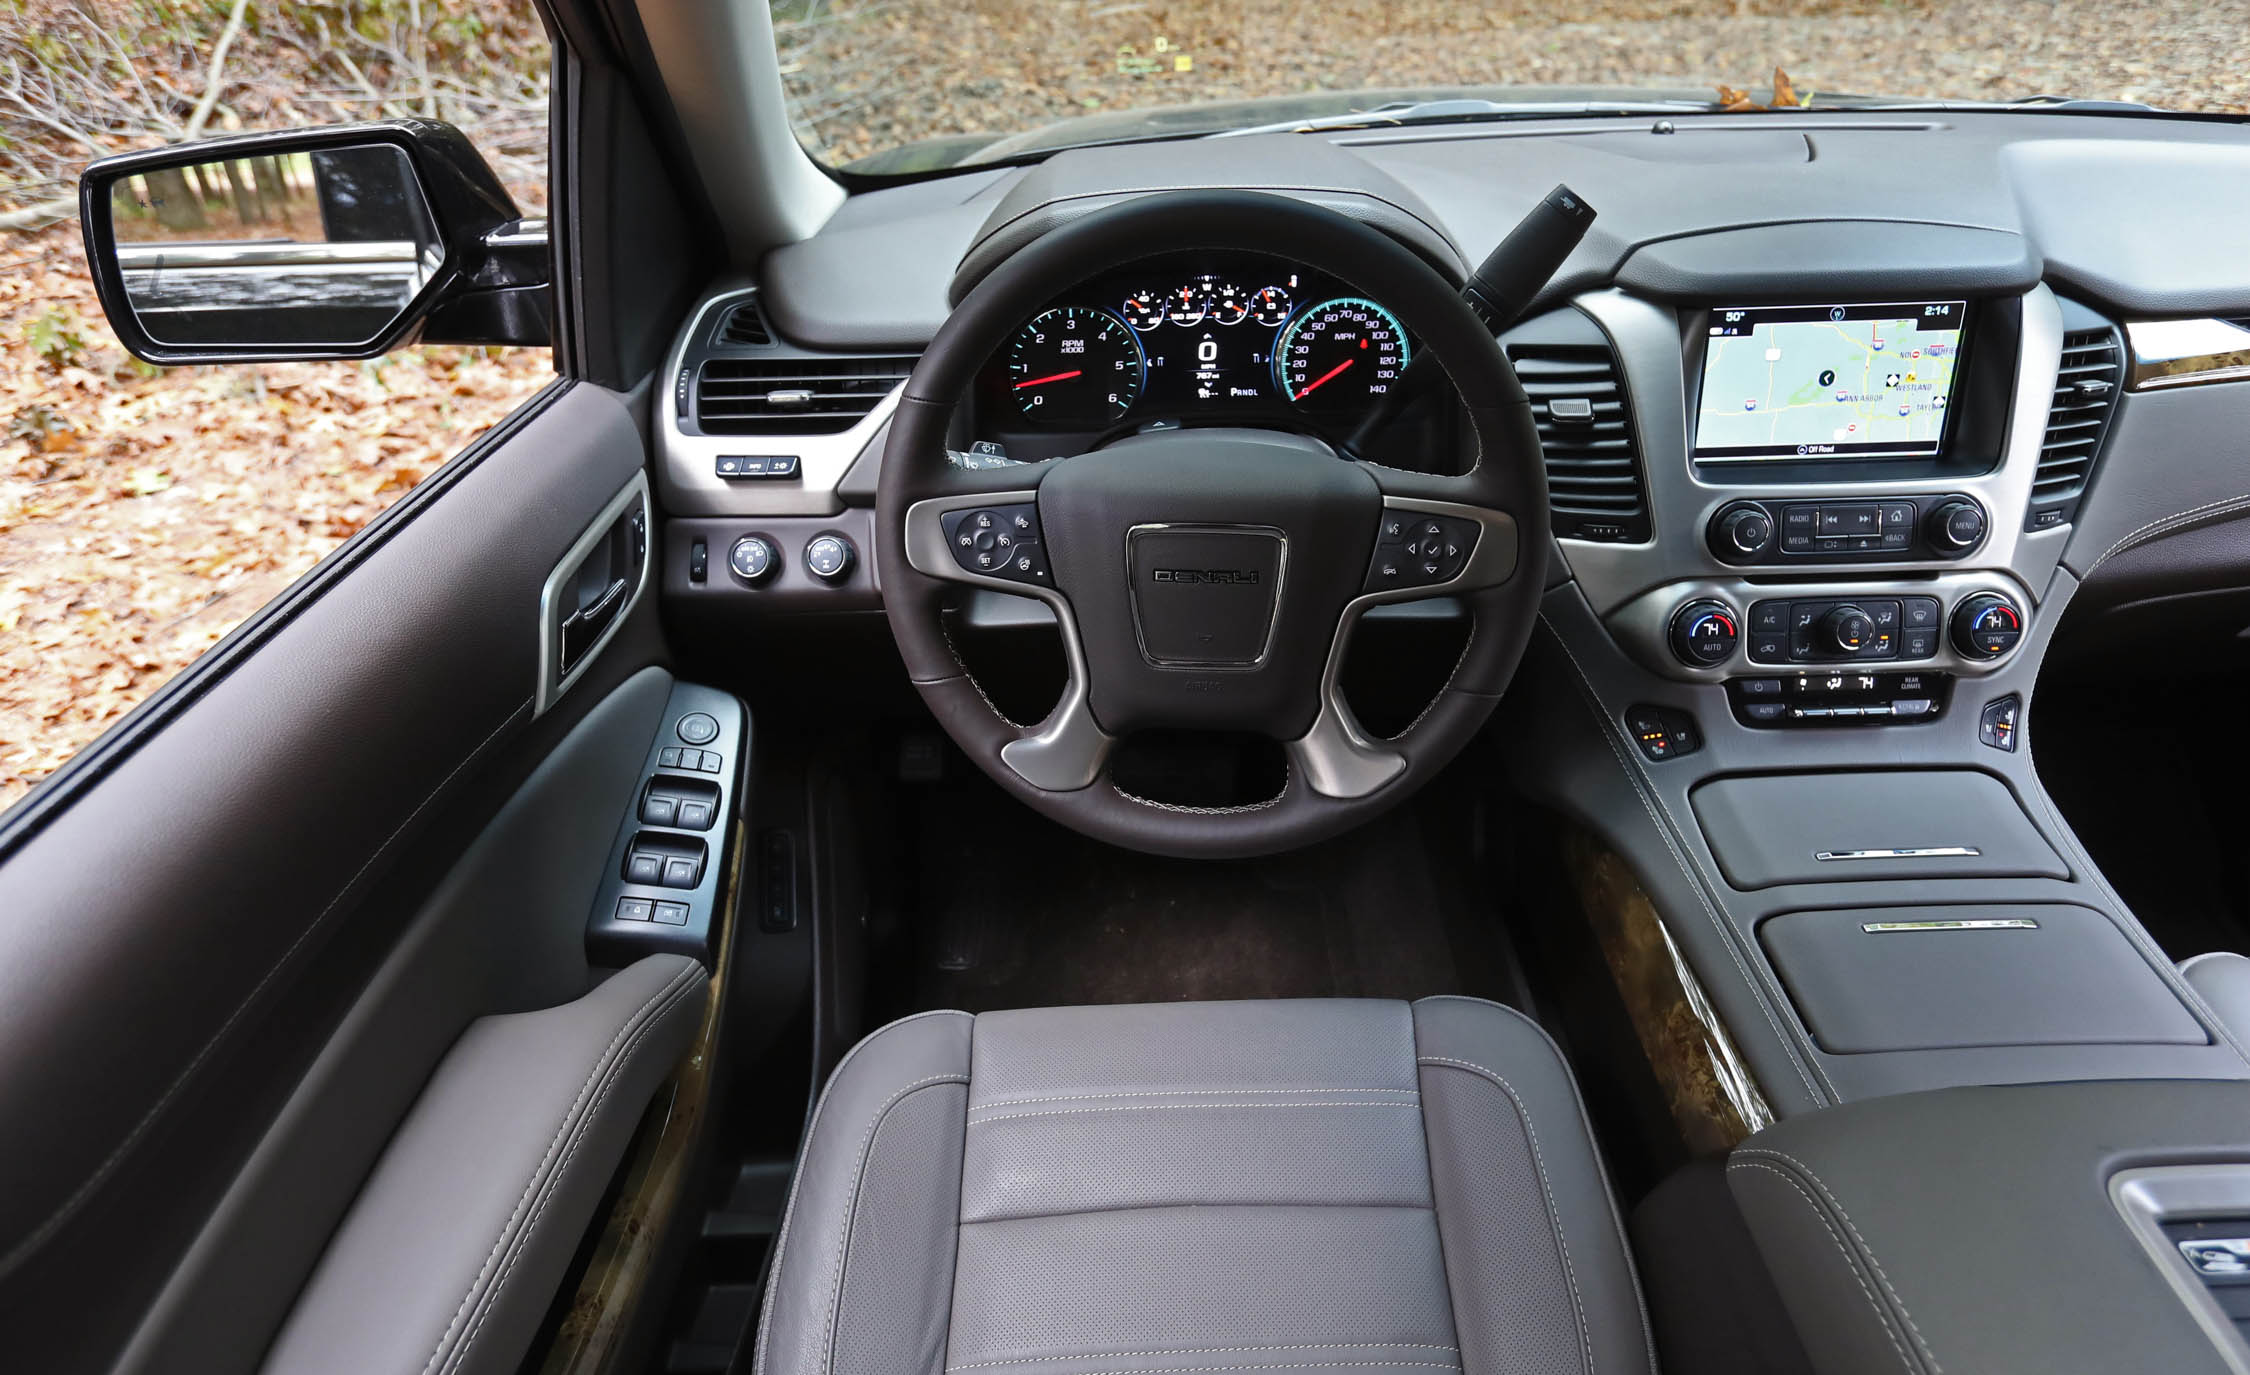 2017 Gmc Yukon Xl Denali Interior Cockpit And Dash (Photo 6 Of 26)